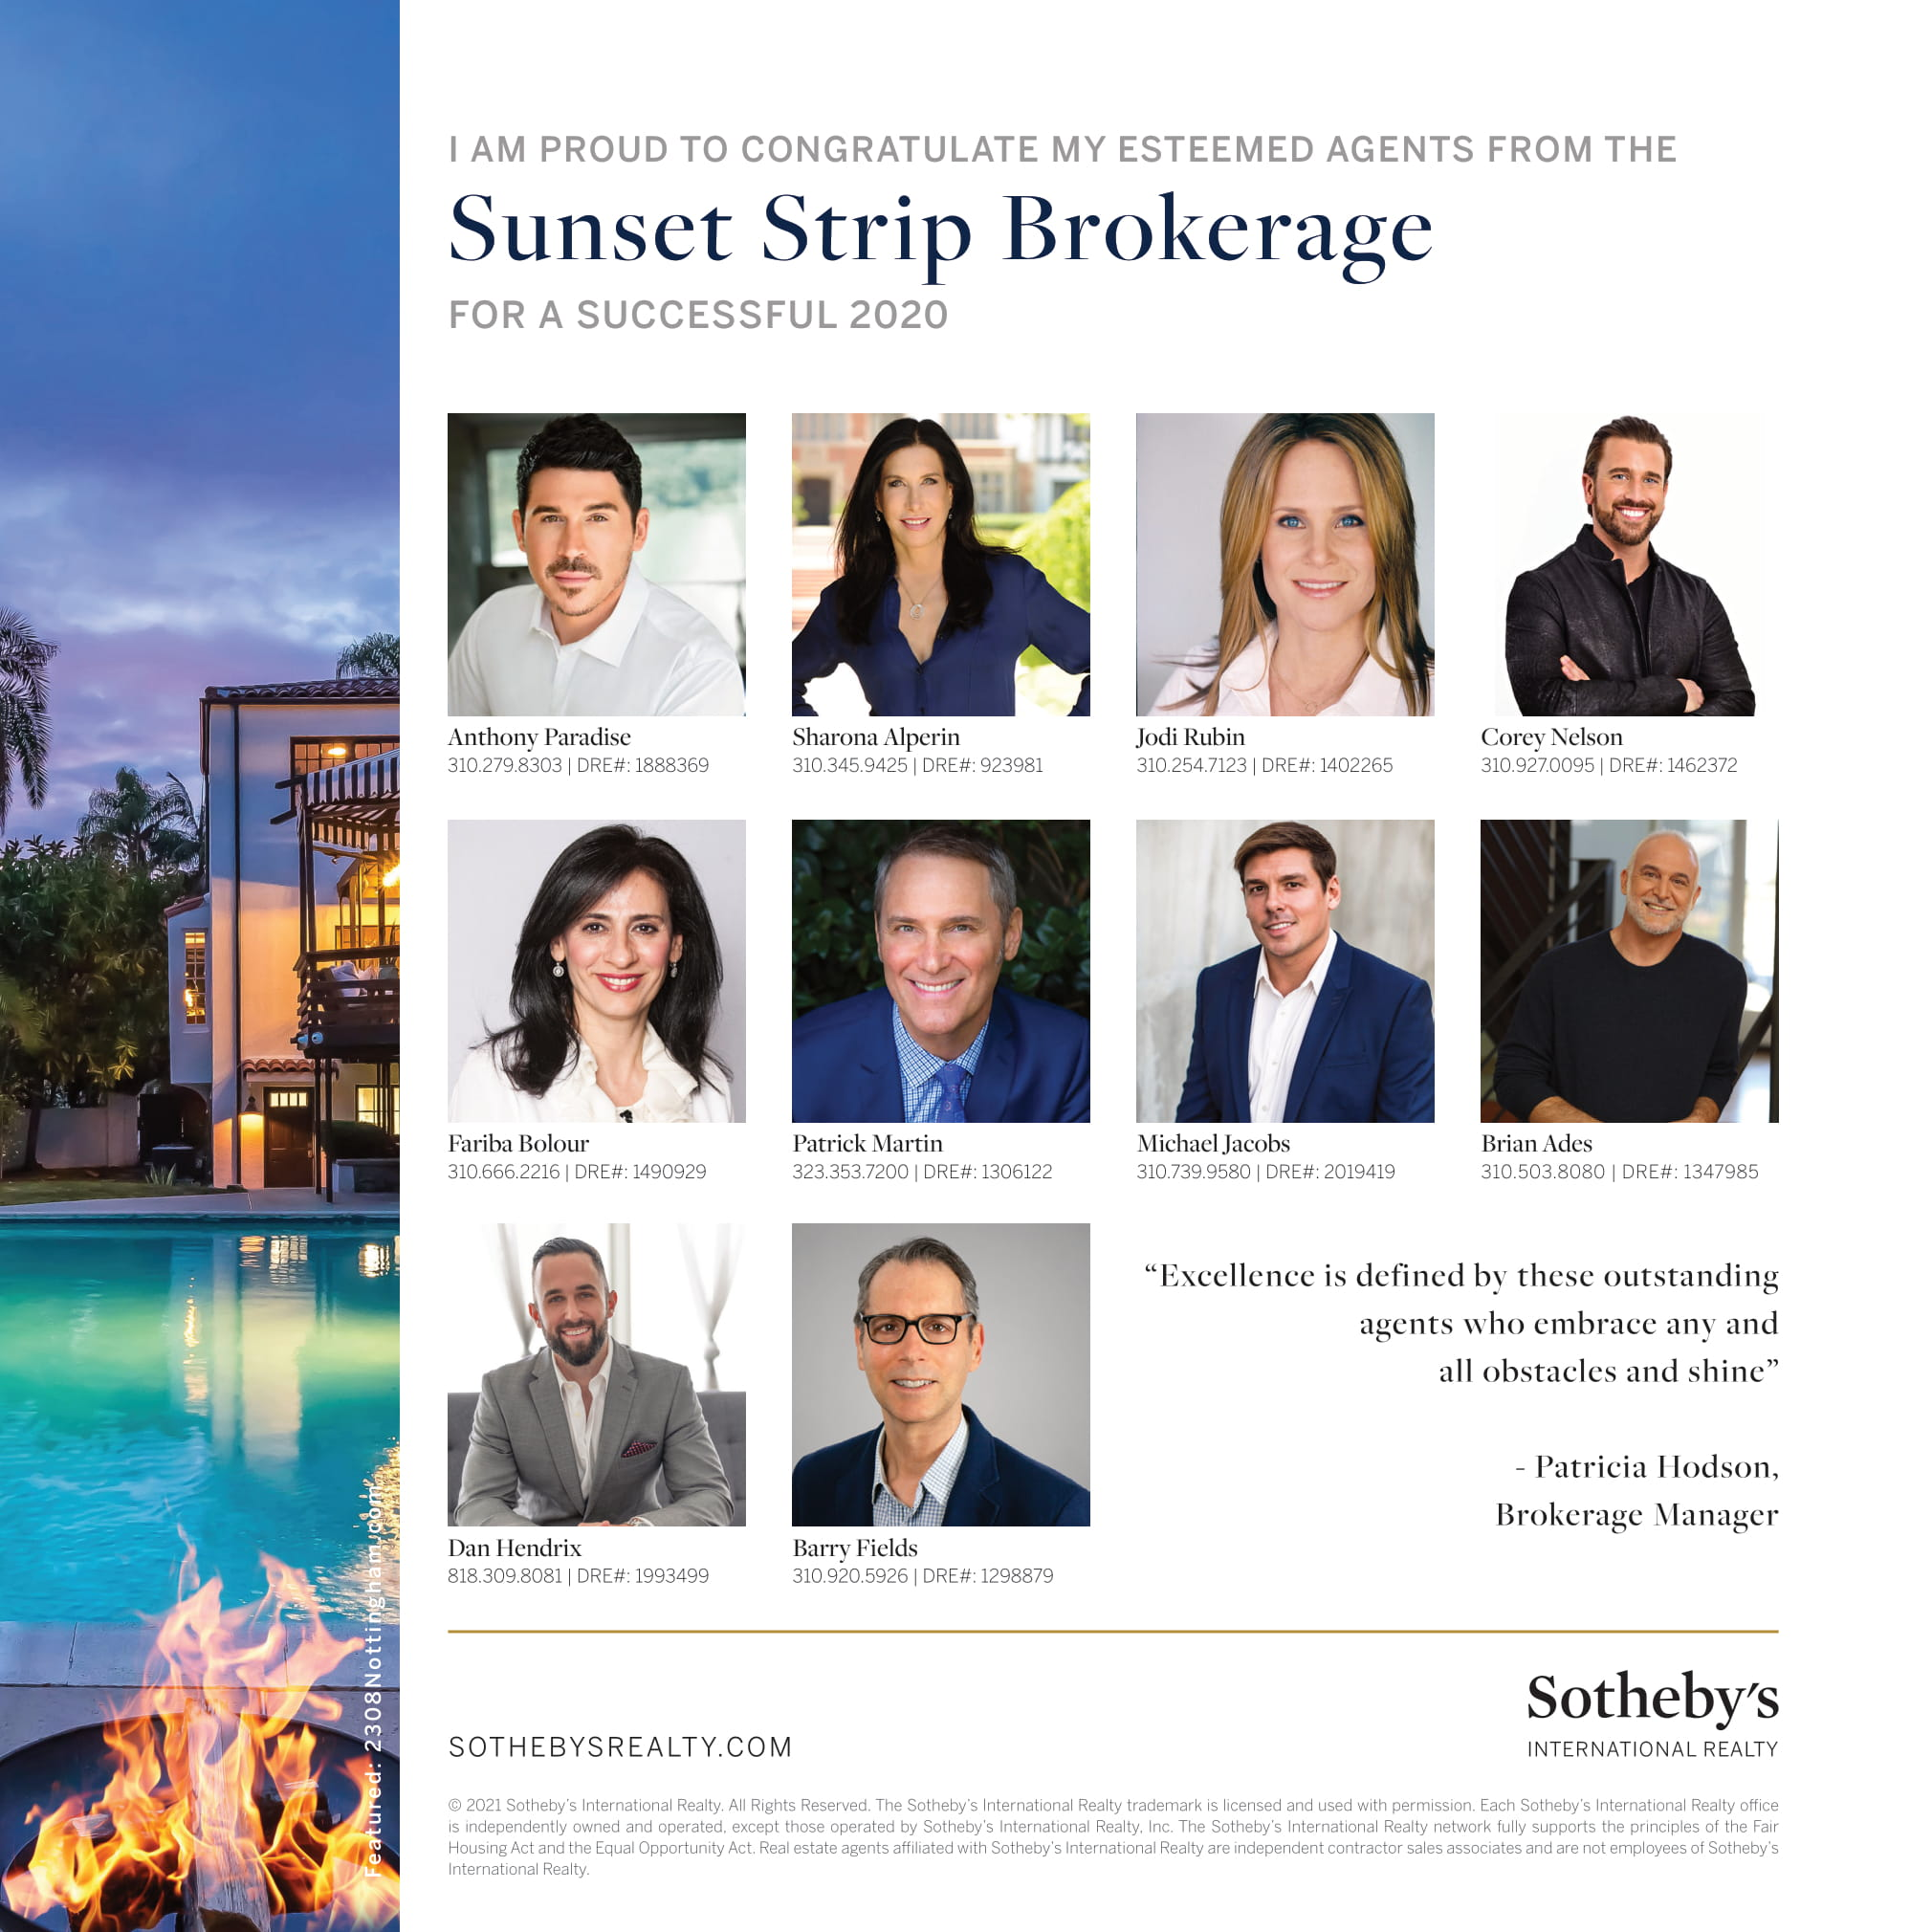 I am proud to congratulate my esteemed agents from the Sunset Strip Brokerage for a successful 2020;